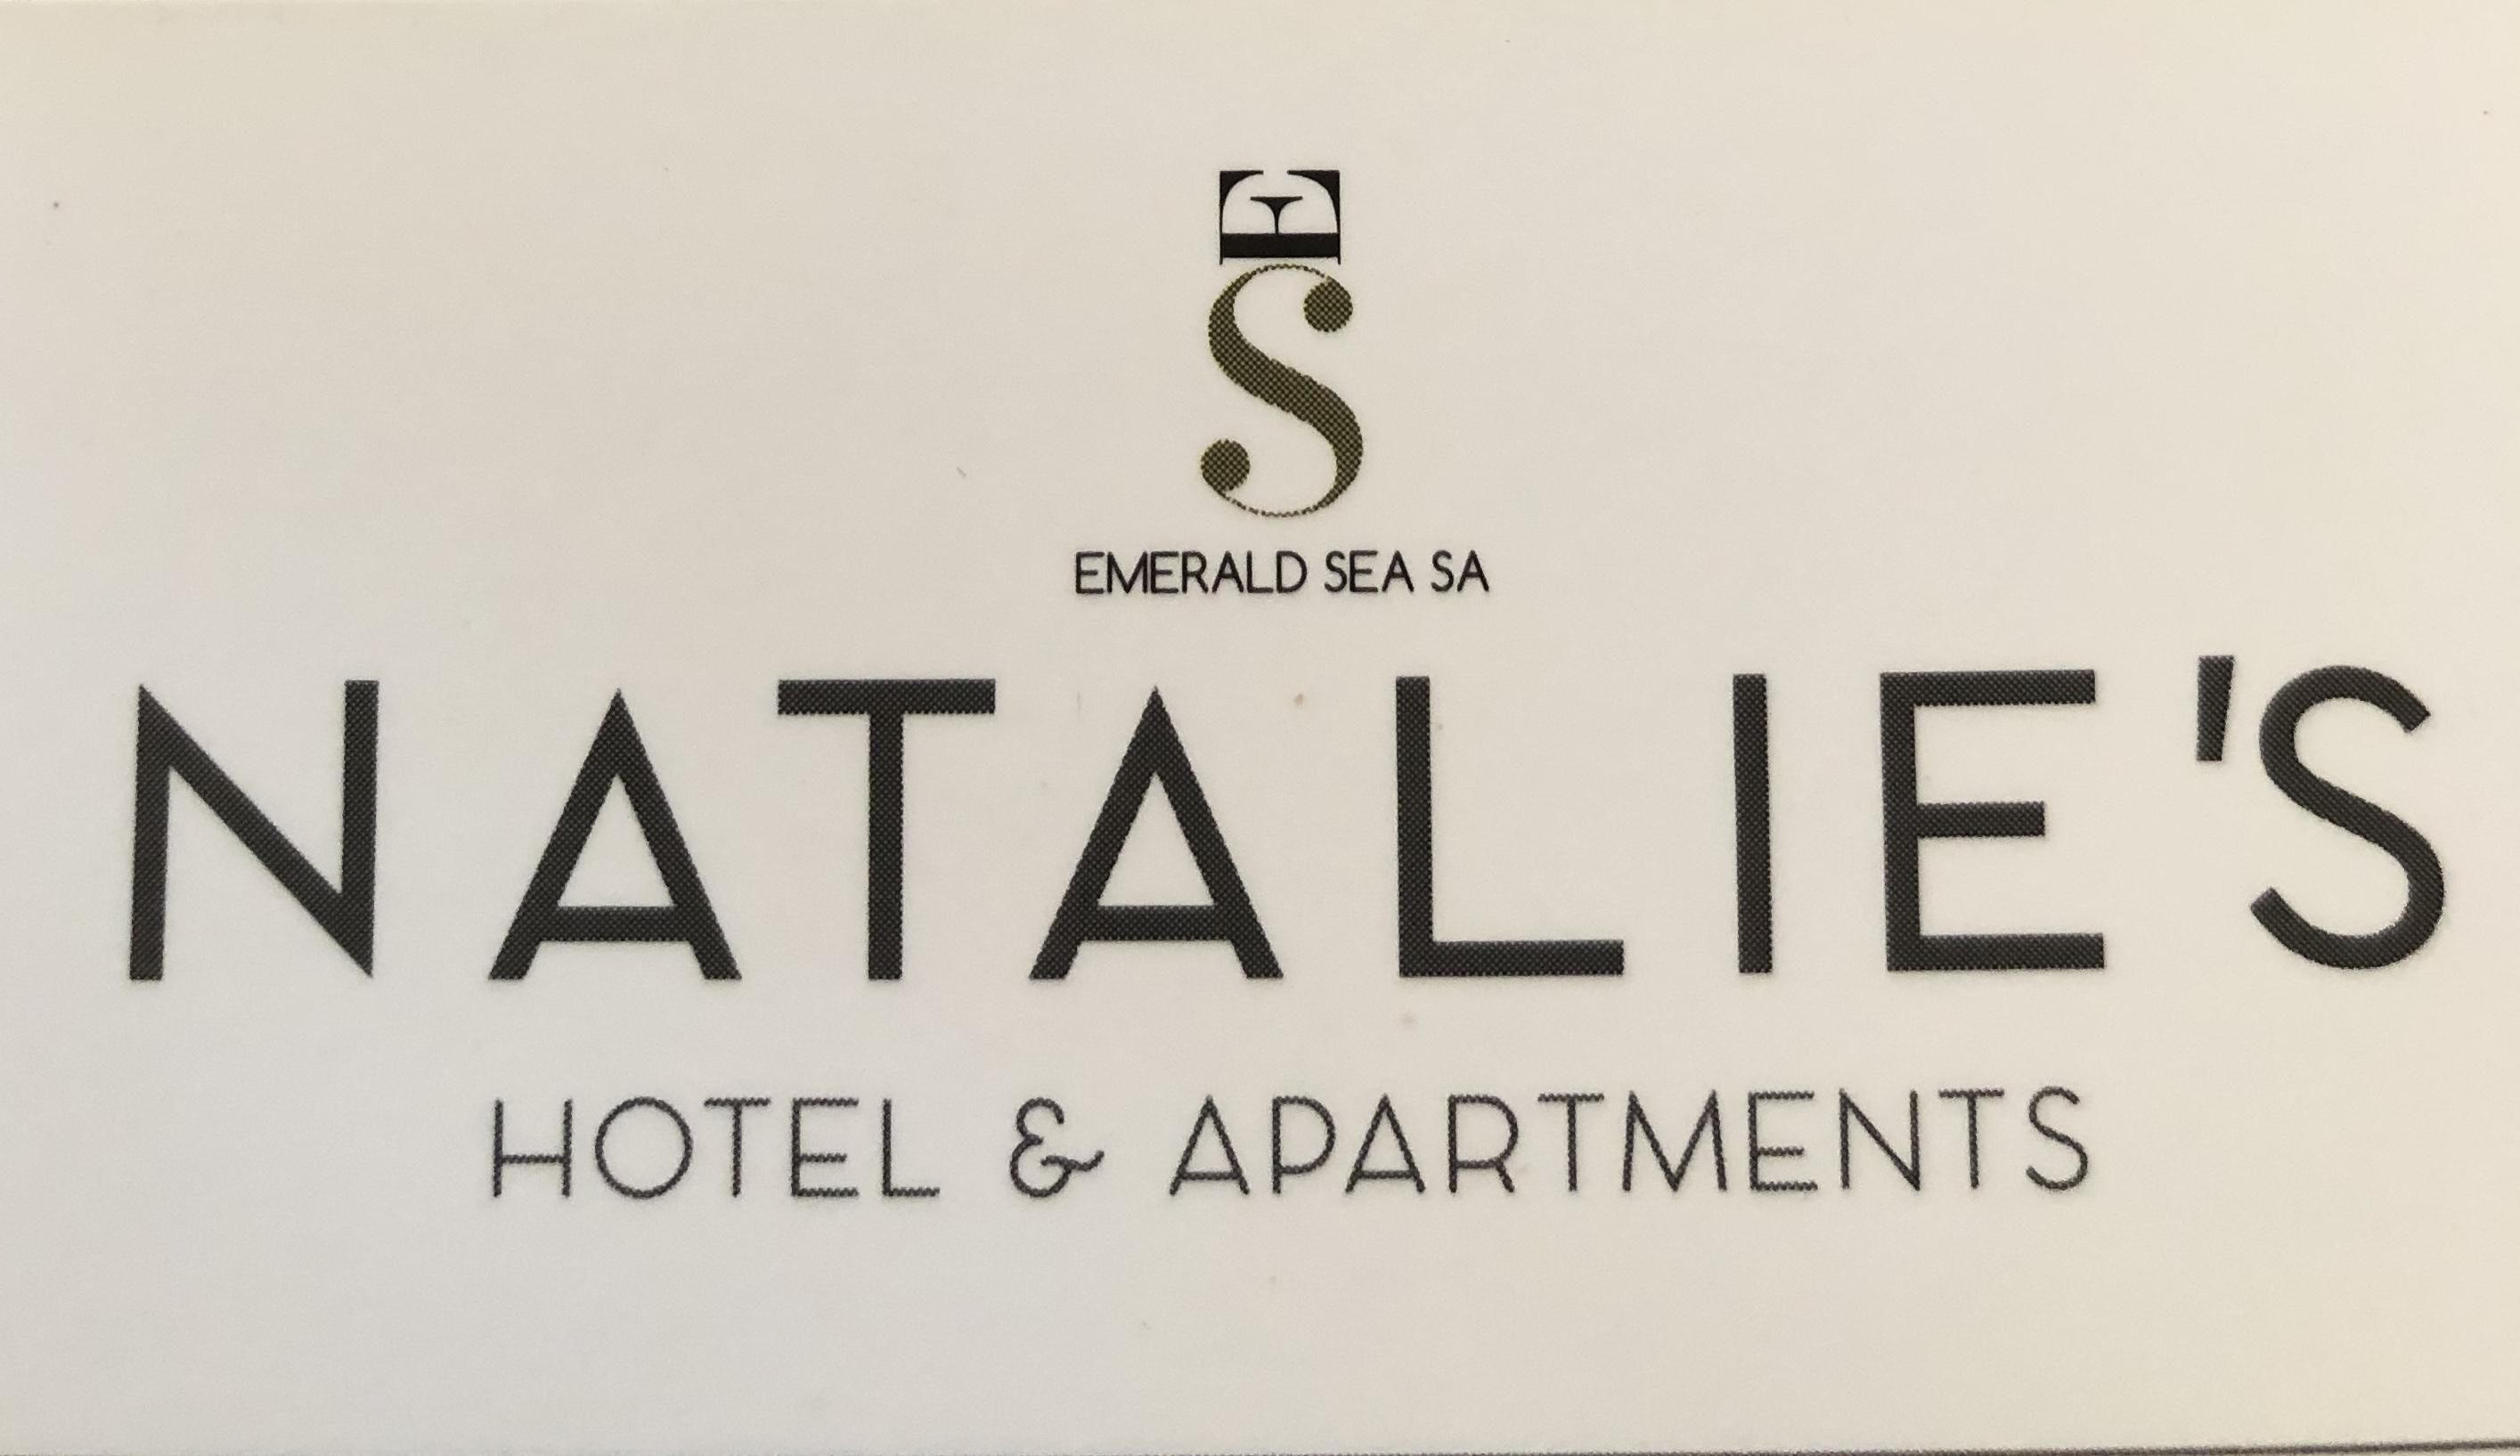 Natalie's Hotel and Apartments